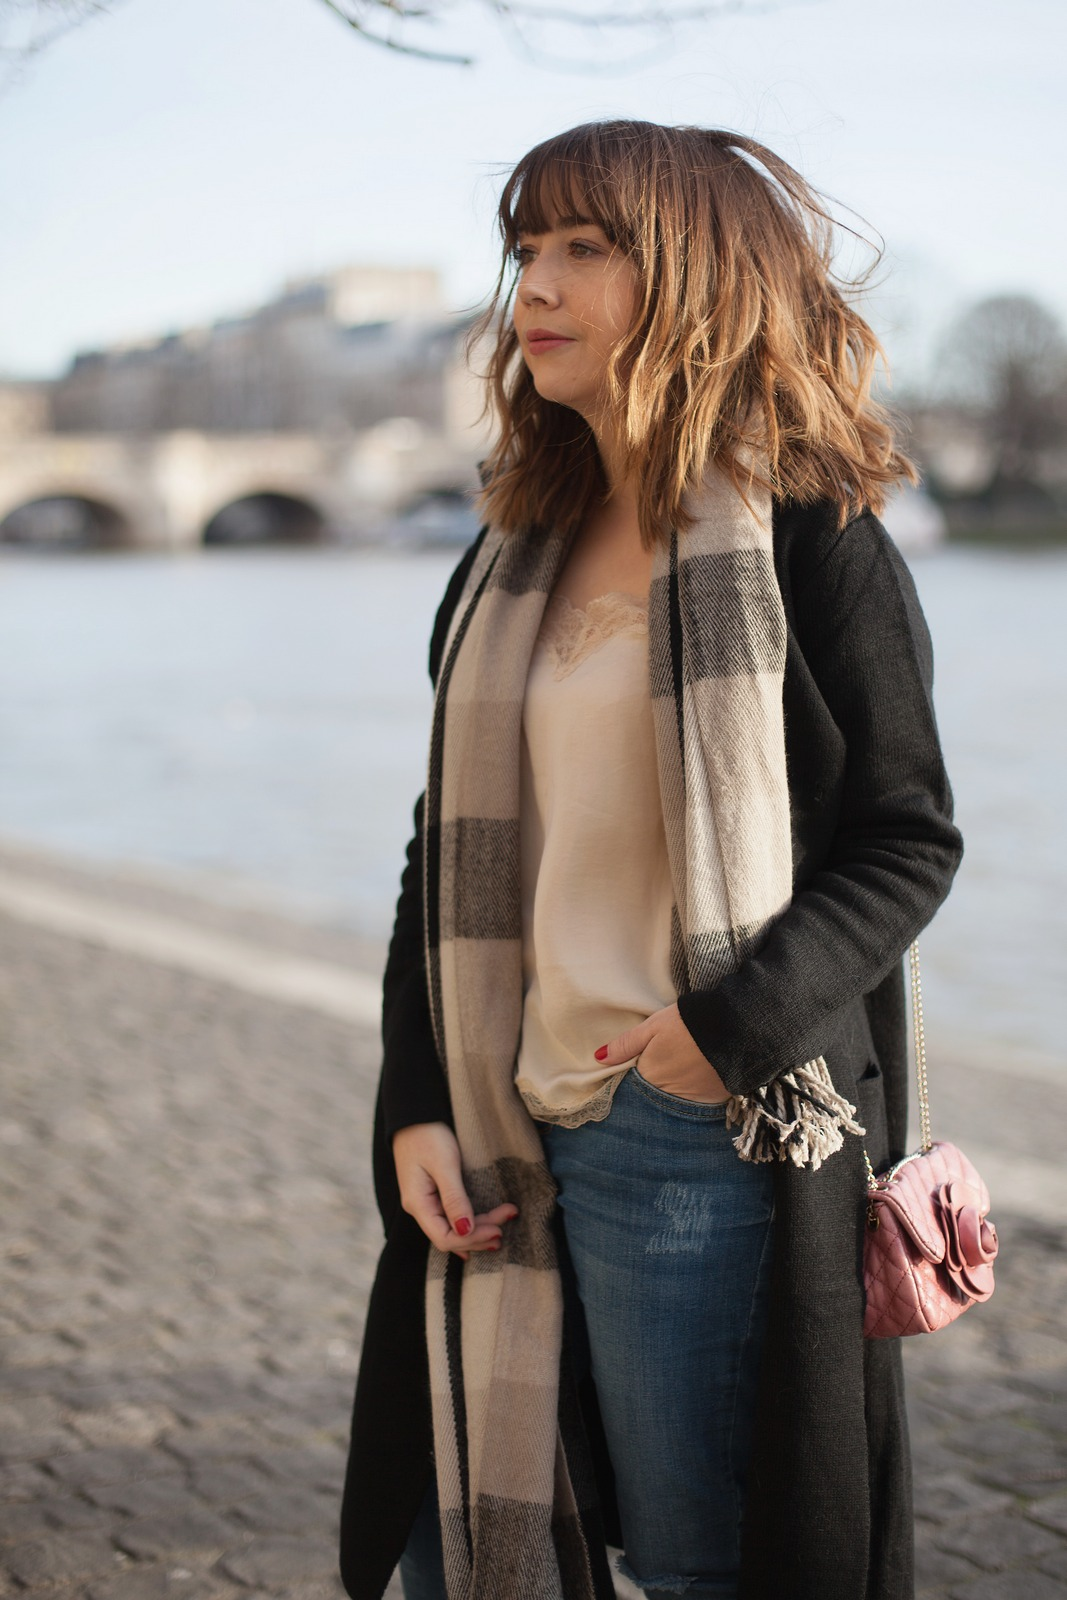 Blog mode femme Paris - Du style, Madame - Streetstyle - gilet long